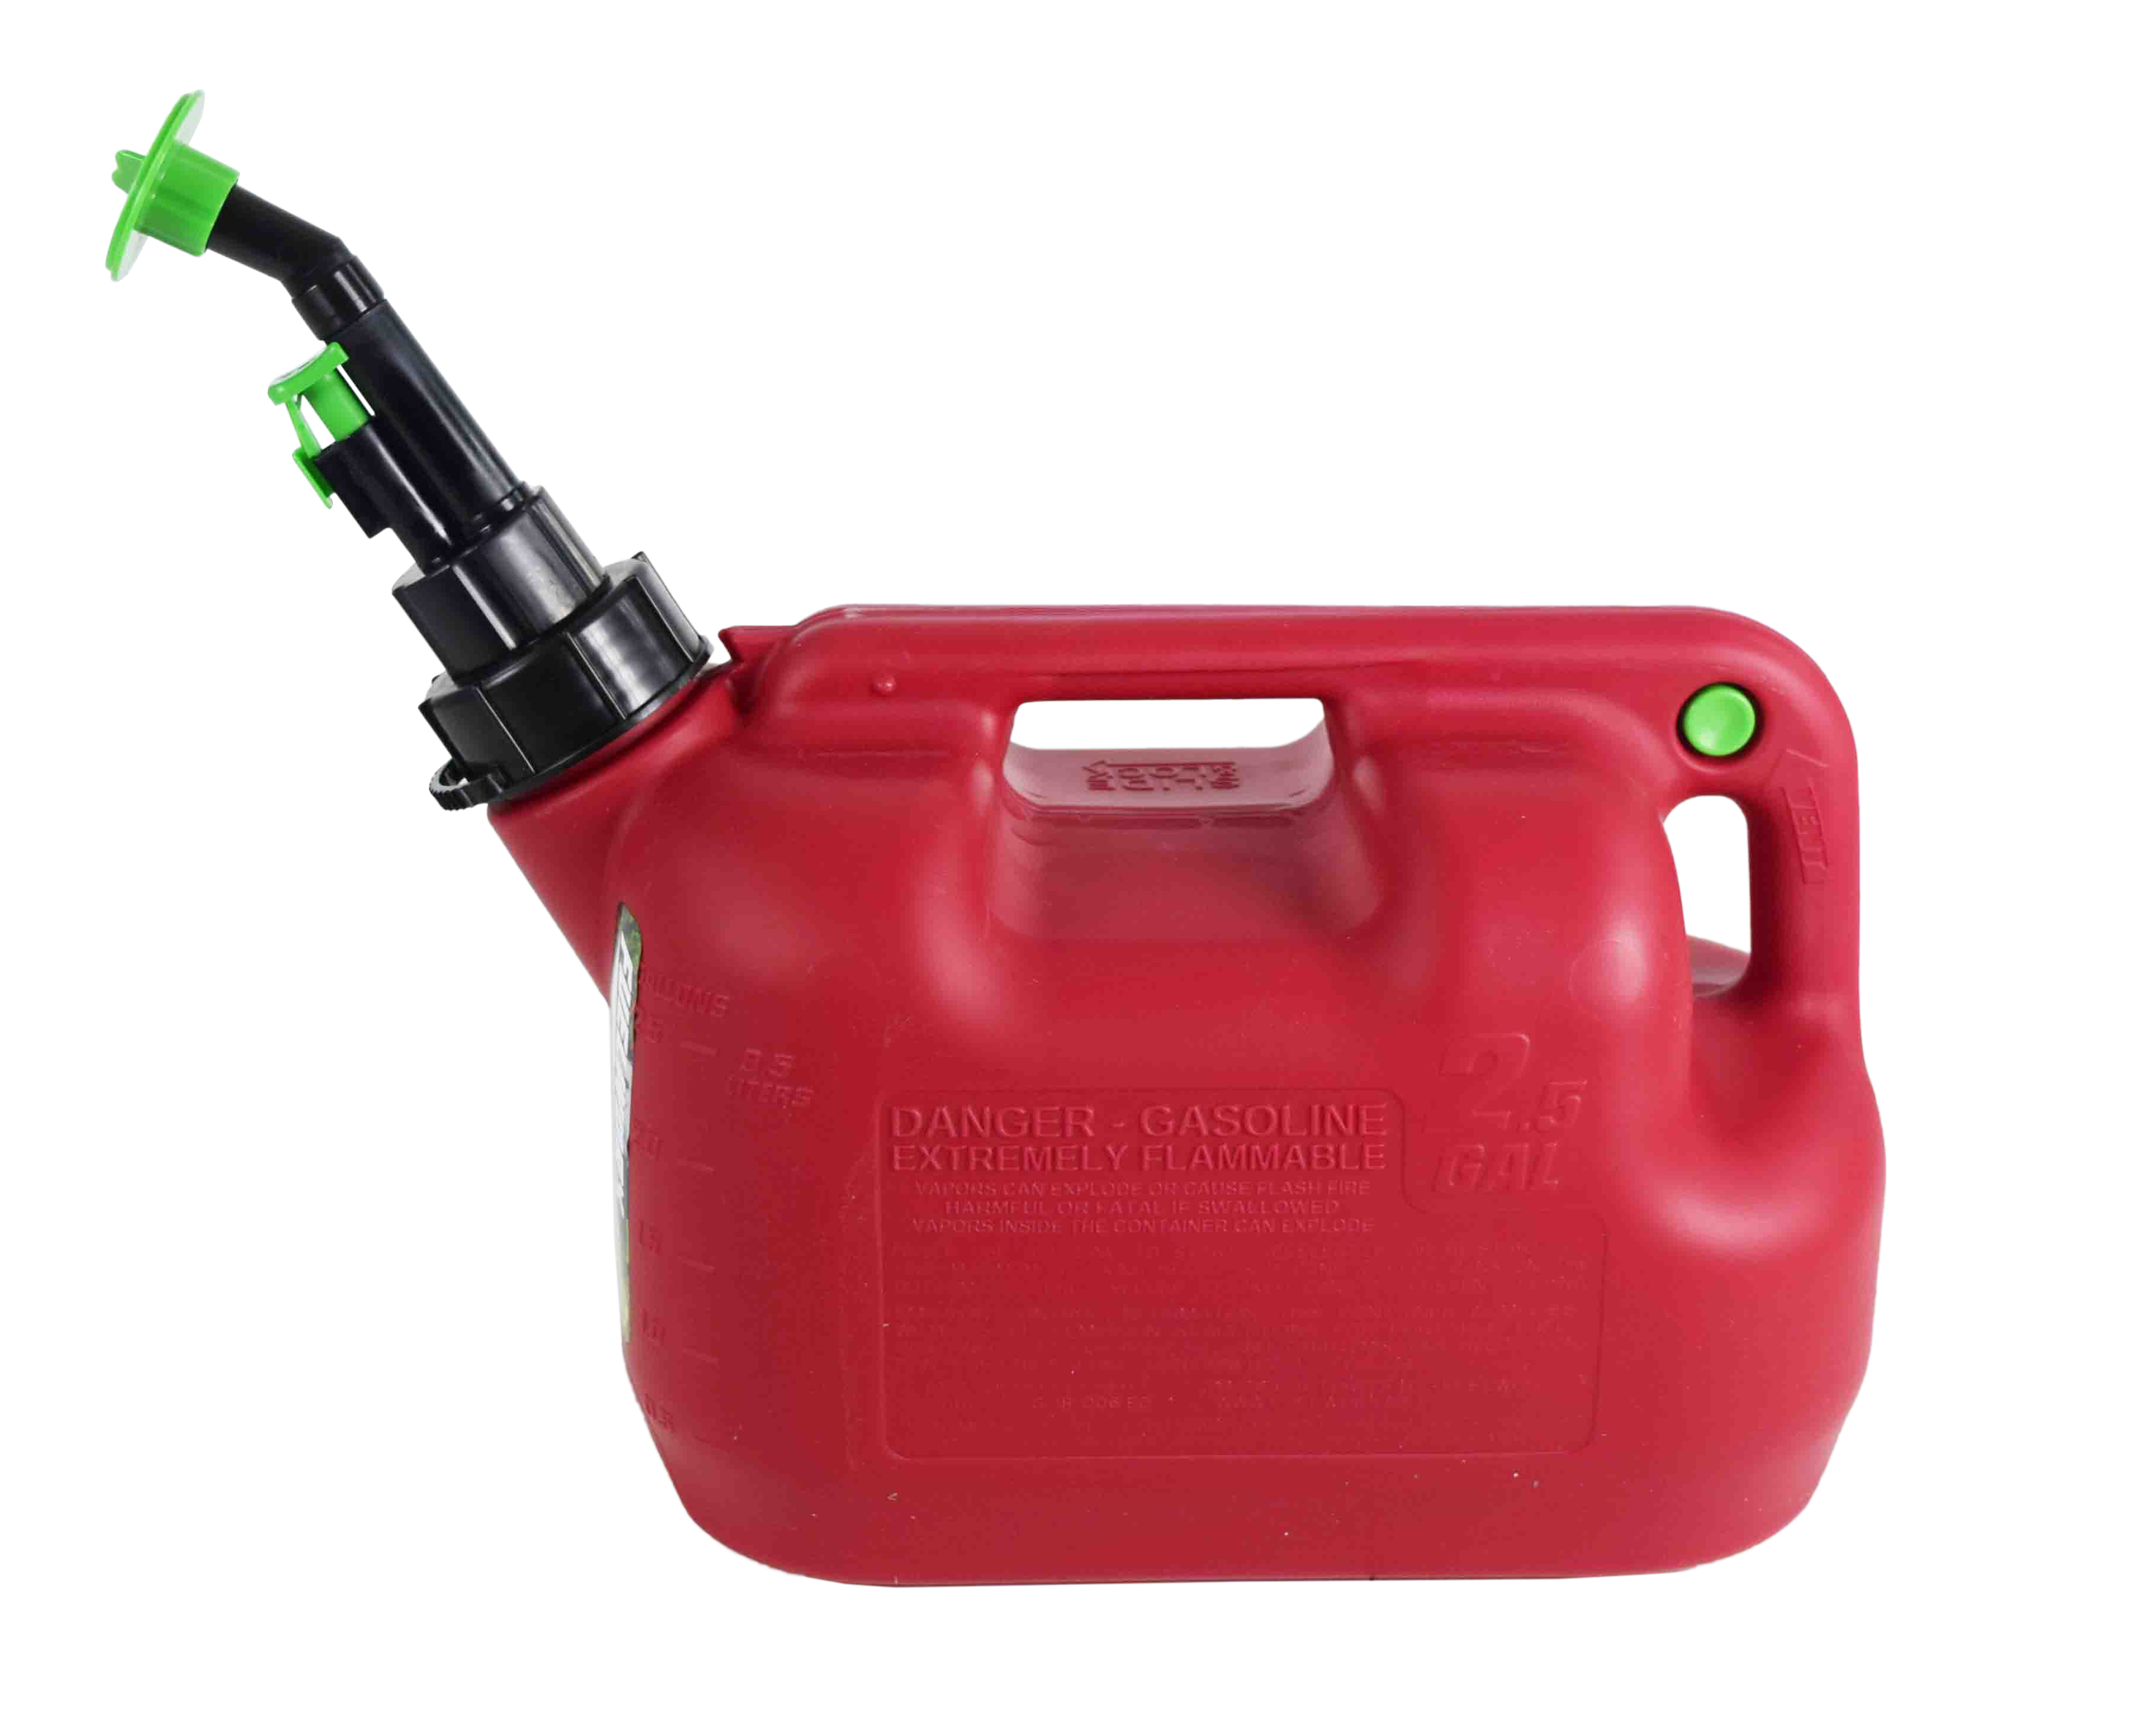 Fuelworx-Red-2.5-Gallon-Stackable-Fast-Pour-Gas-Fuel-Cans-CARB-Compliant-Made-in-The-USA-2.5-Gallon-Gas-2-Pack-image-3